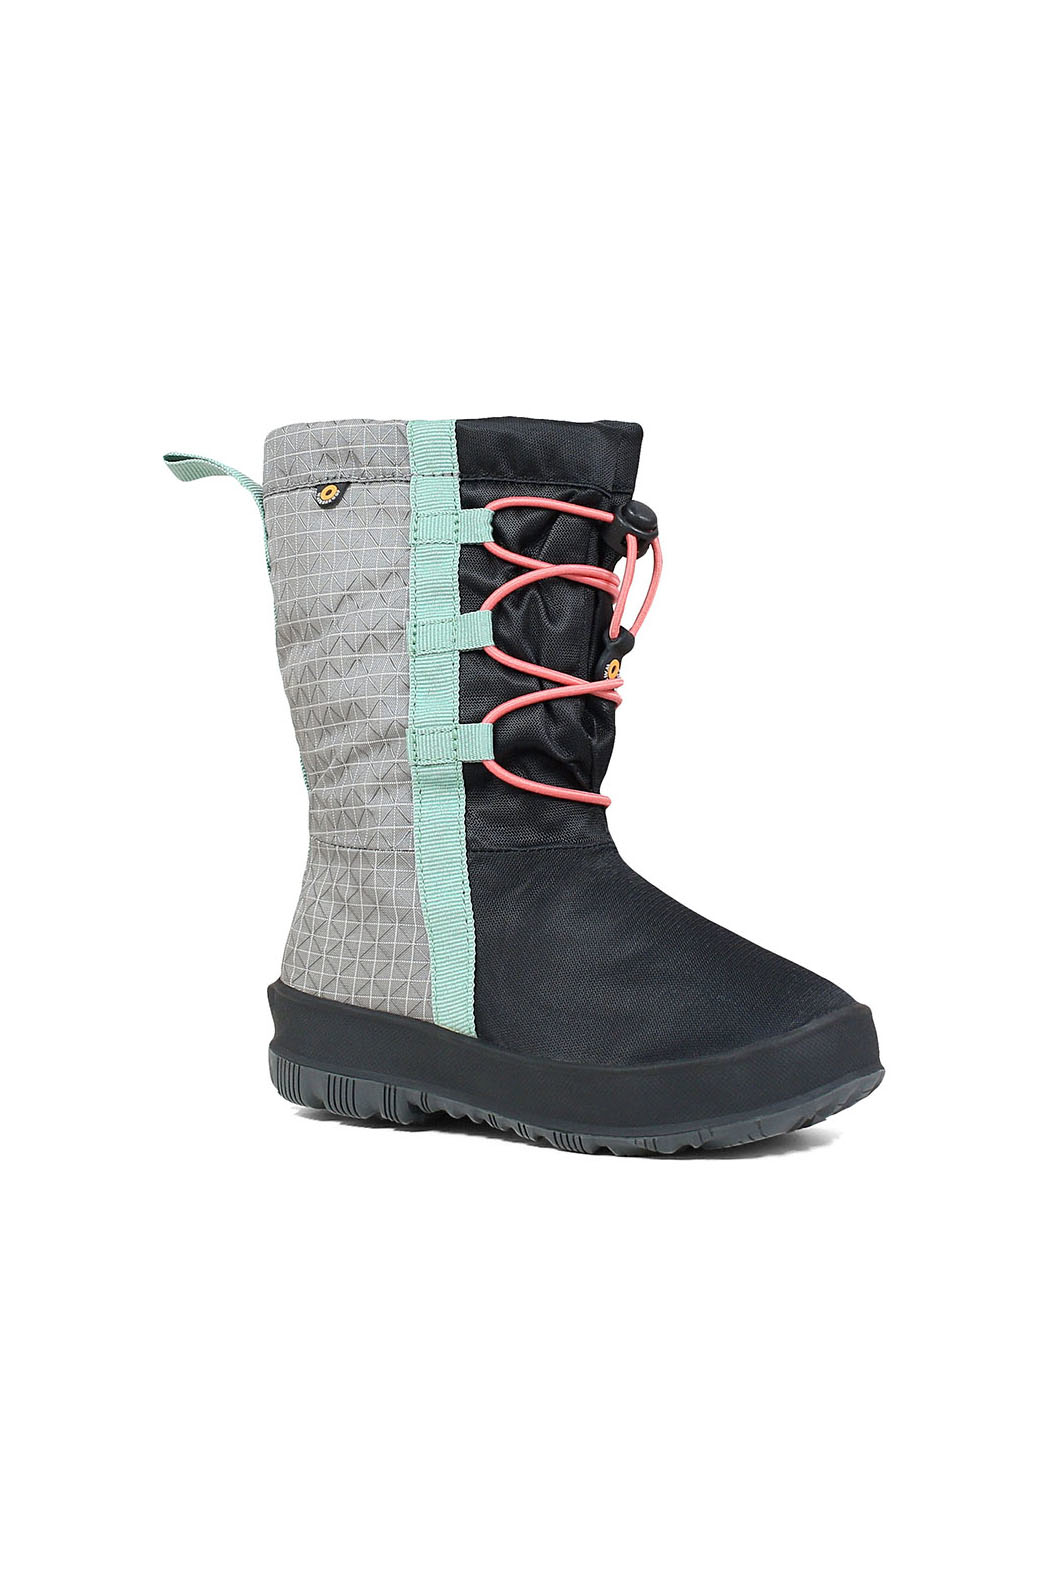 bogs  Snownights Waterproof Winter Boots - Front Full Image